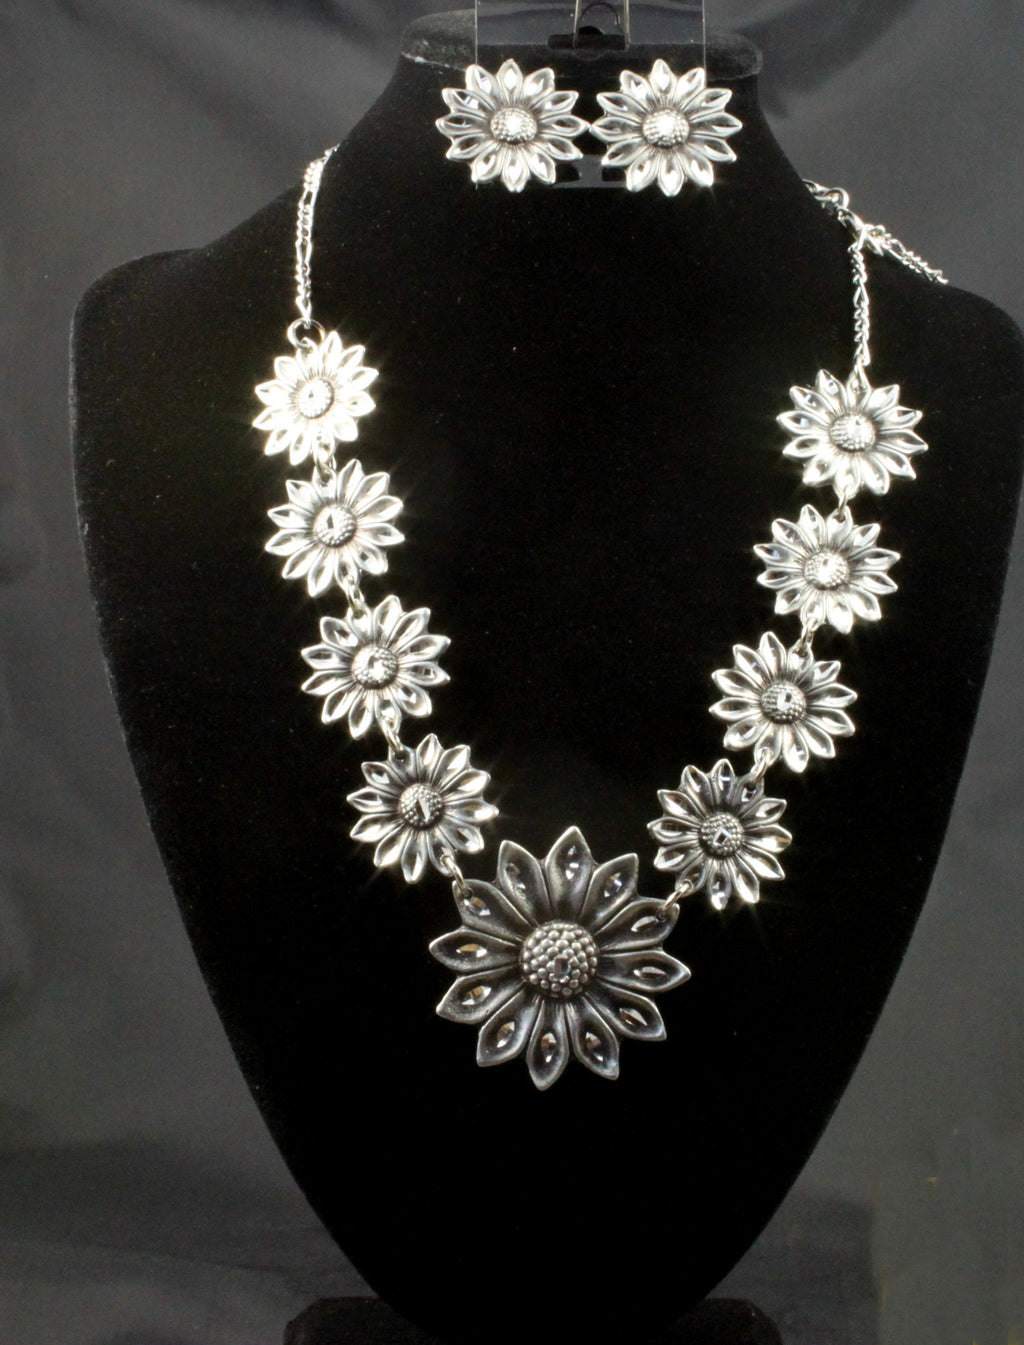 Daisy Necklace & Earrings